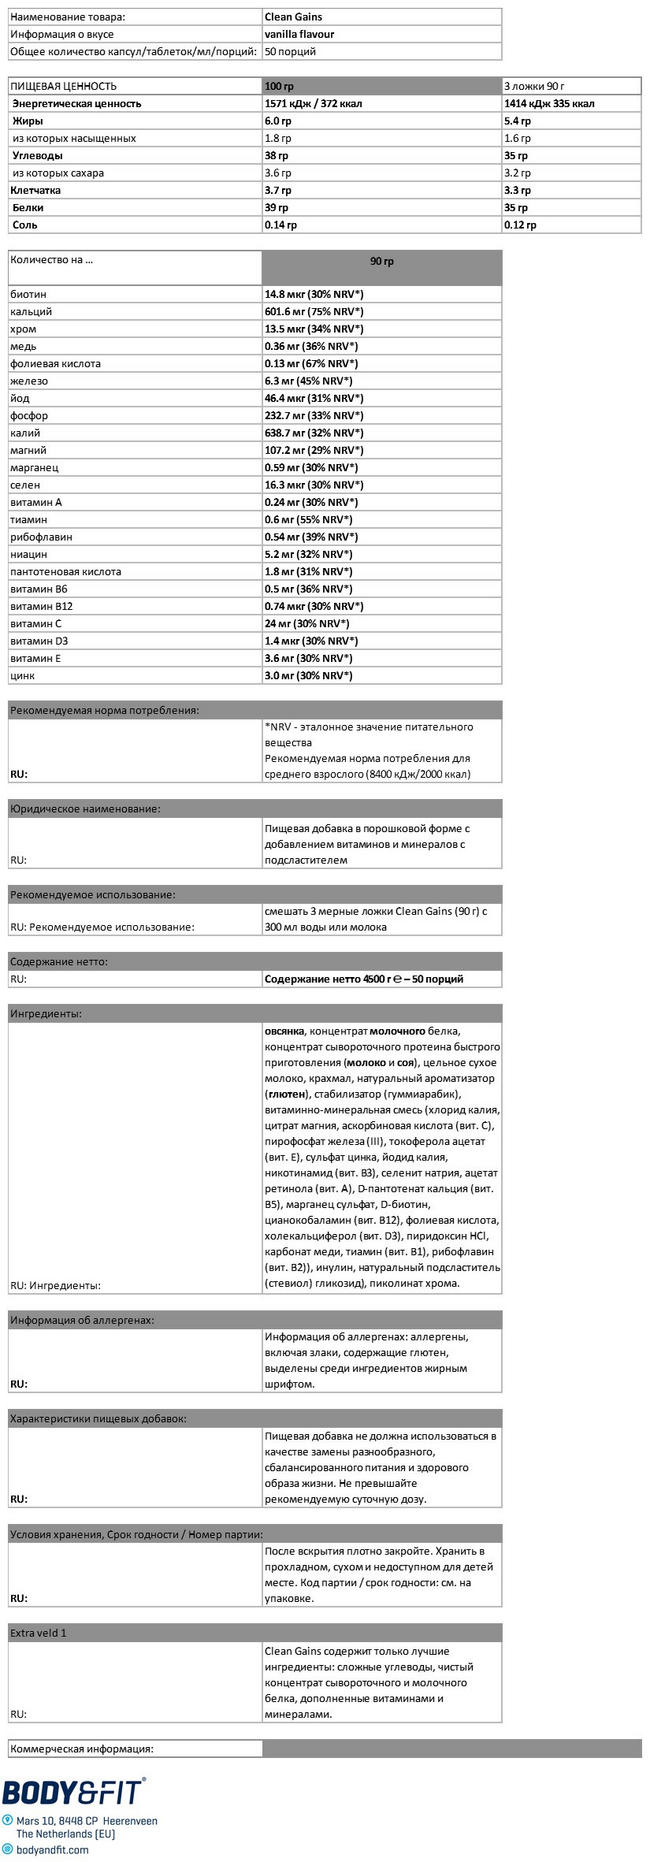 Clean Gains Nutritional Information 1